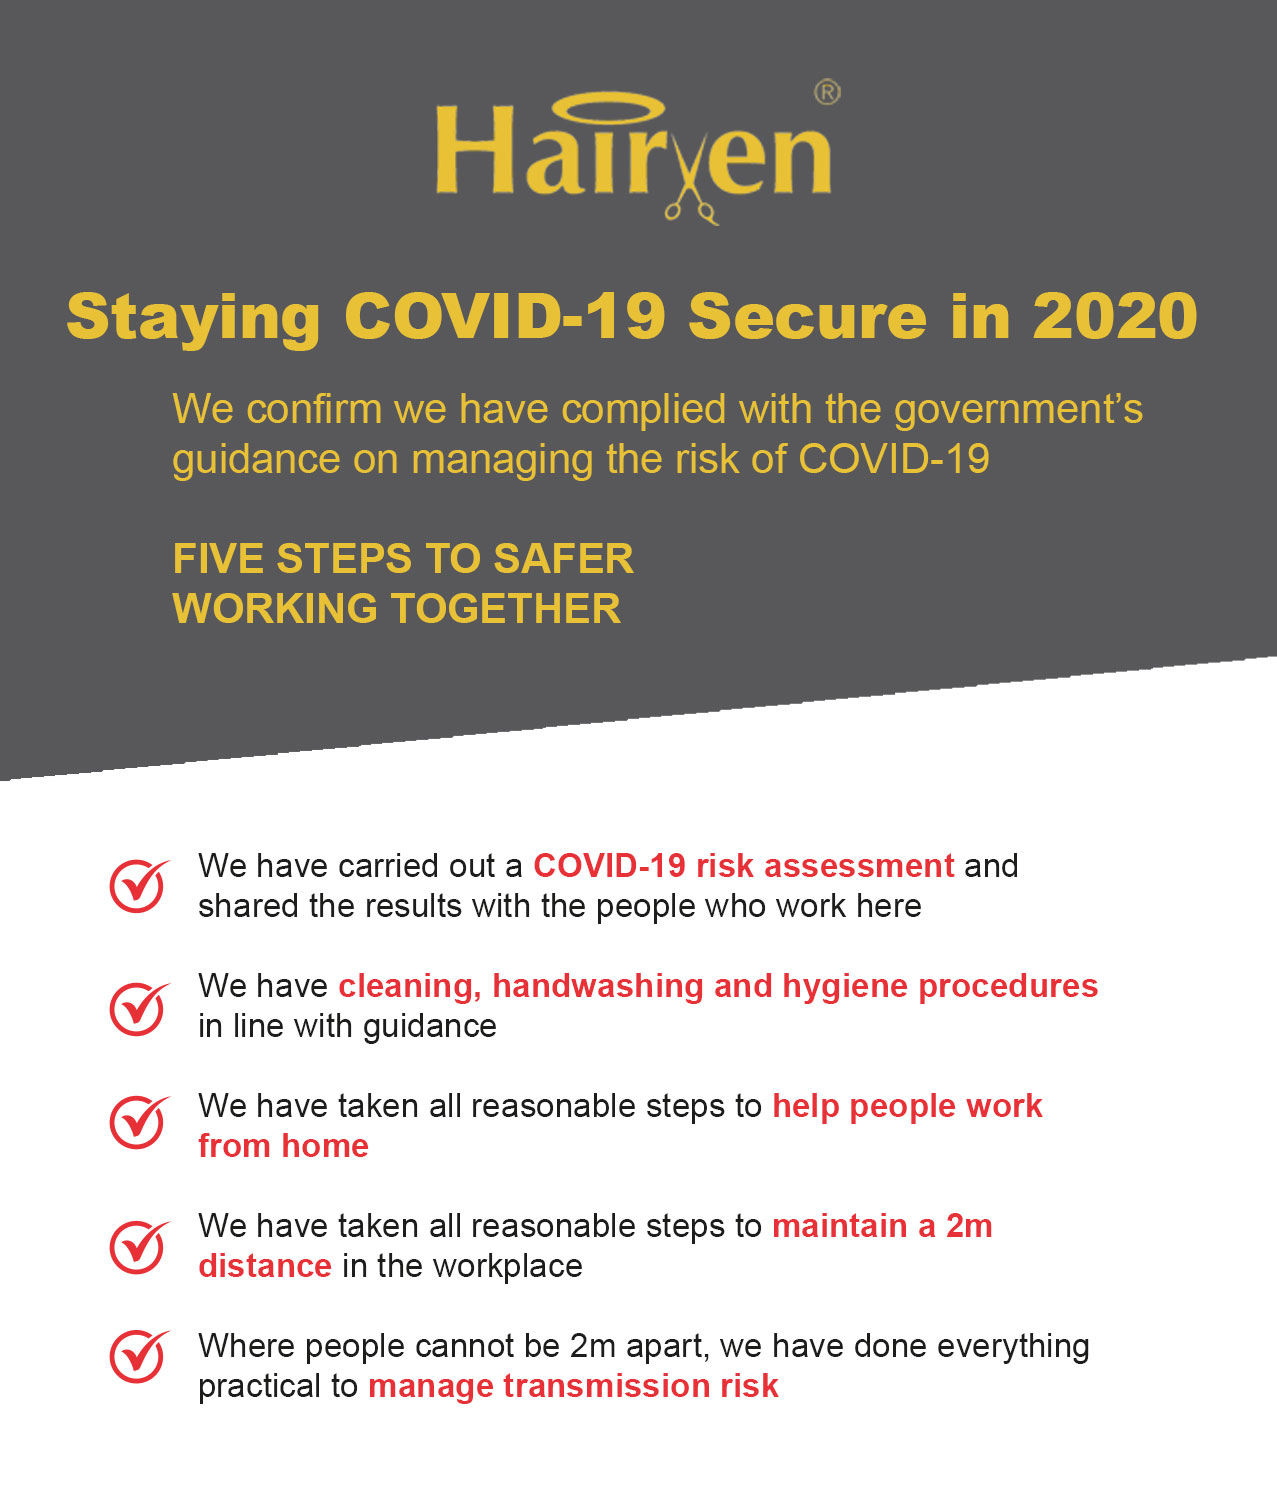 hairven Safe Staying COVID 19 Secure in 2020 nottingham hair and beauty salons